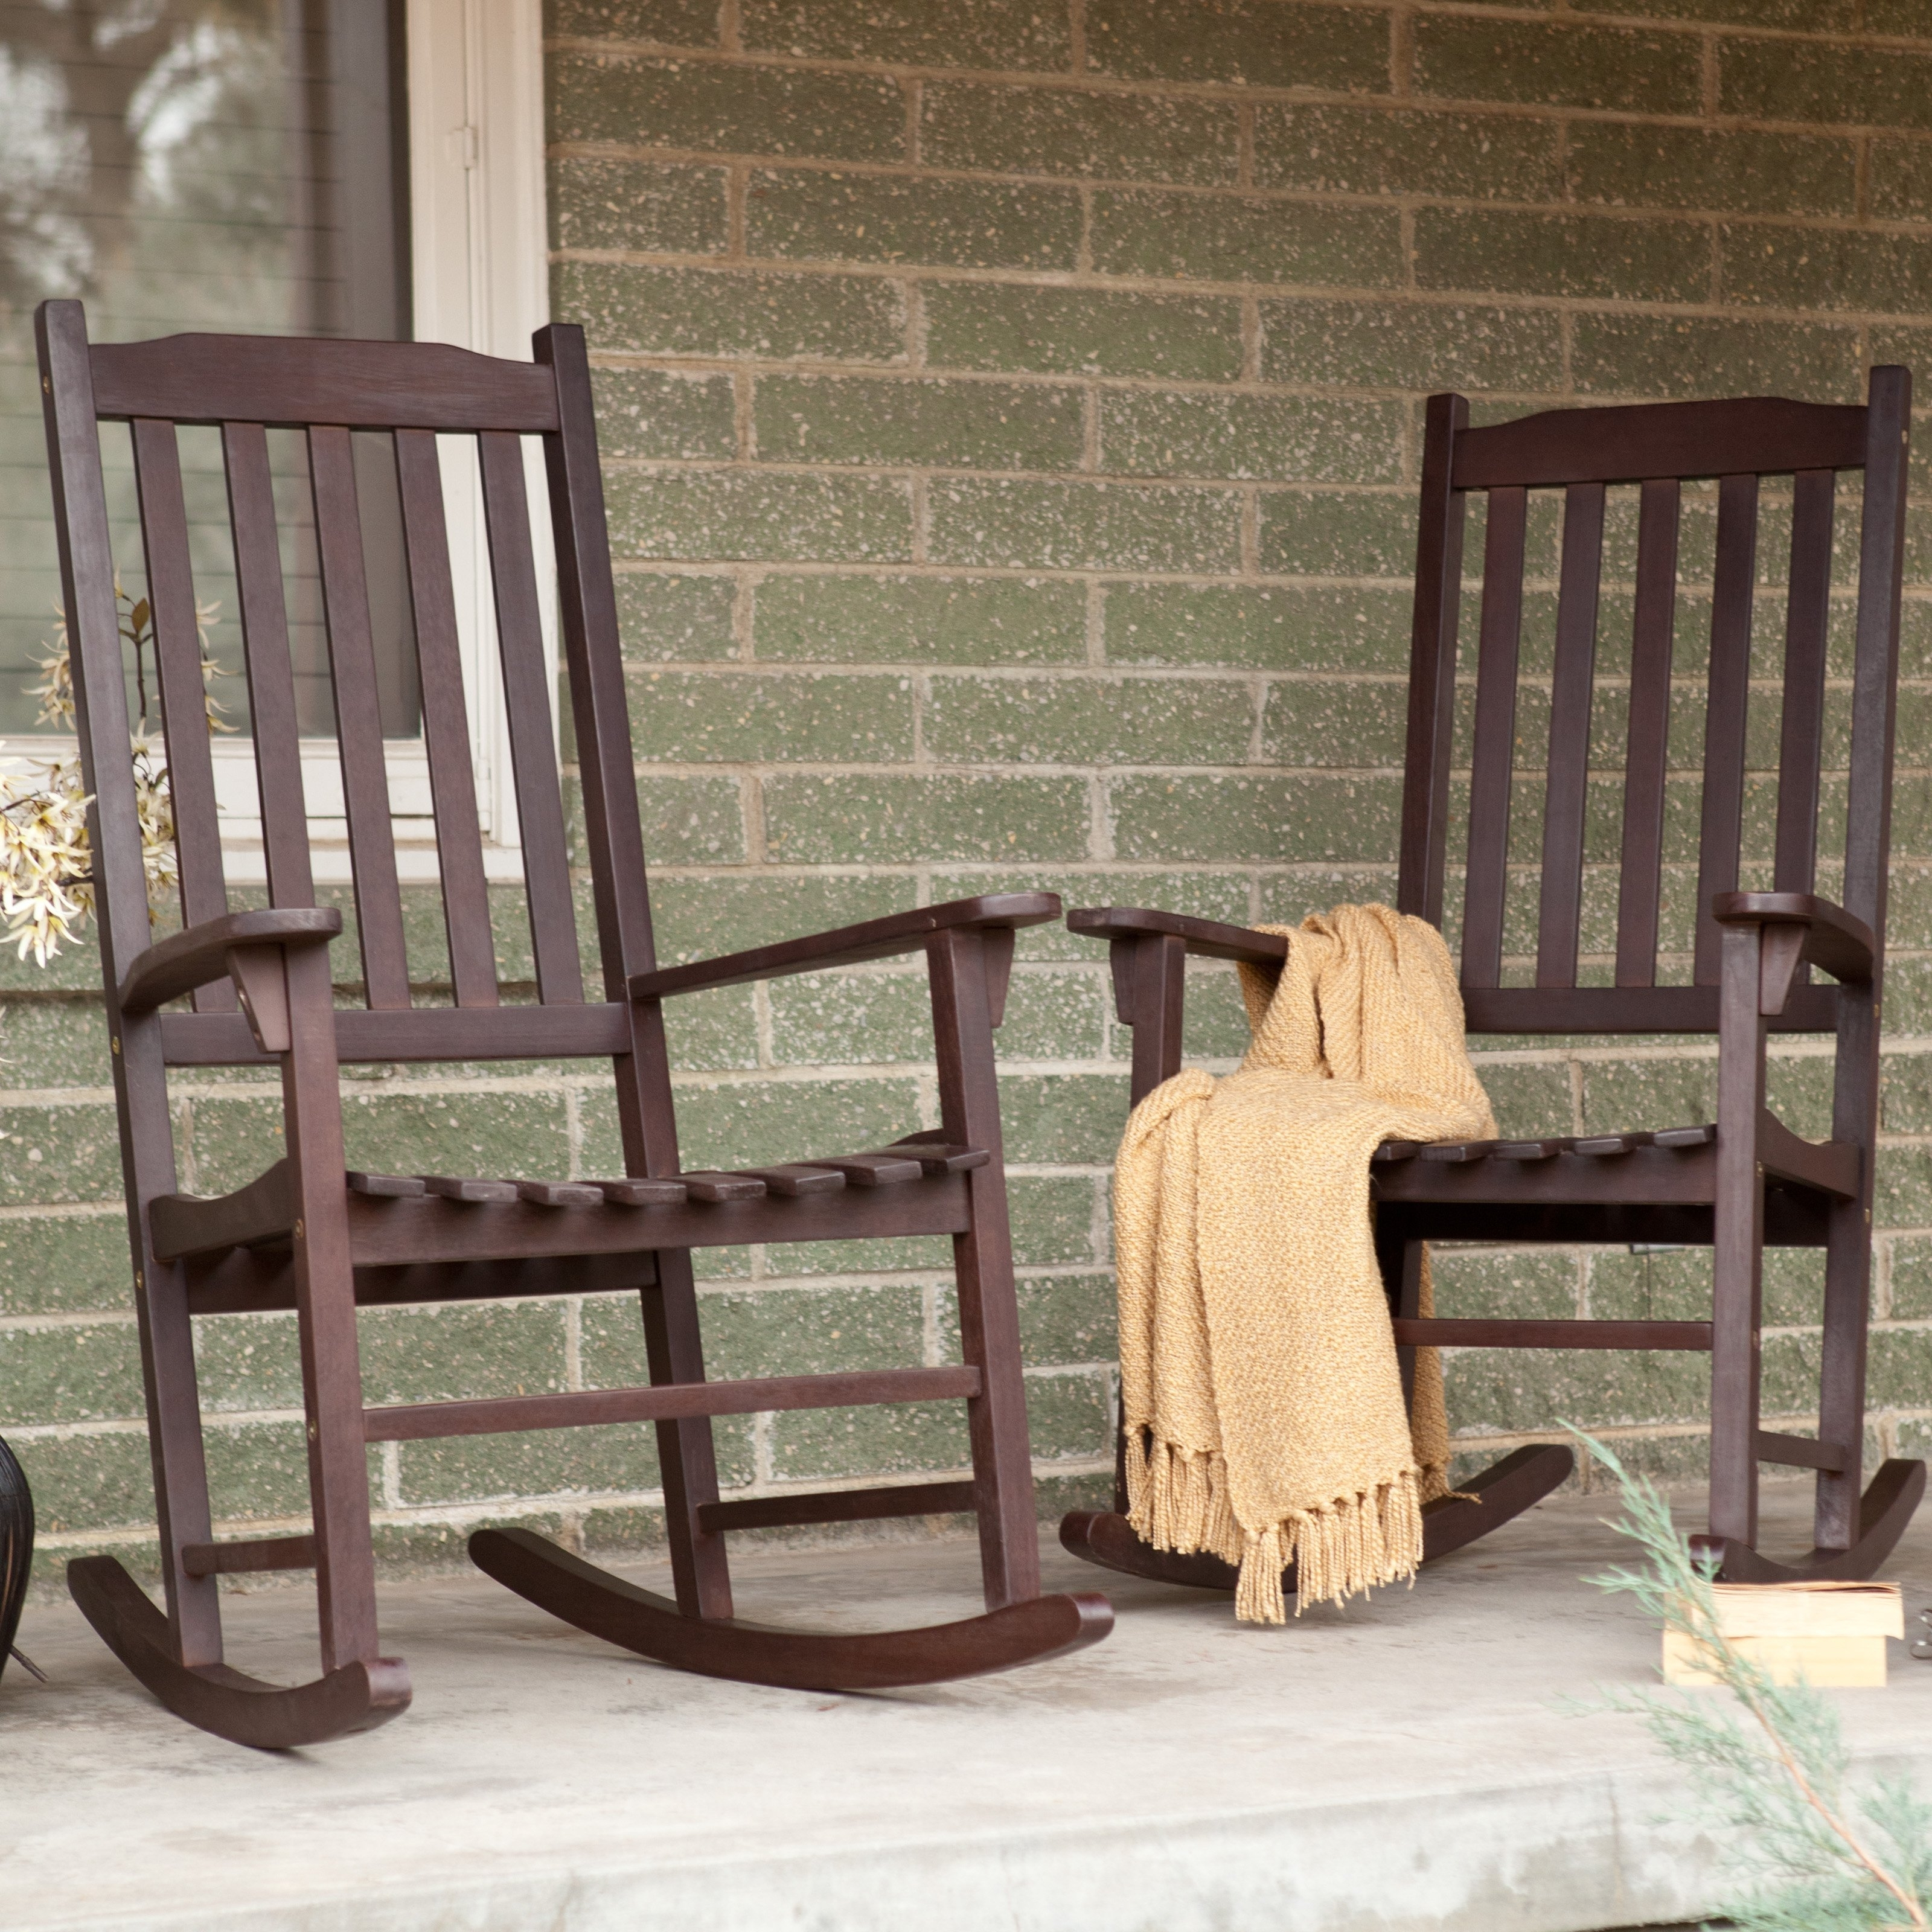 Widely Used Outdoor Wooden Rocking Chairs Chair Kits Amazon High Back With Patio Wooden Rocking Chairs (View 5 of 15)